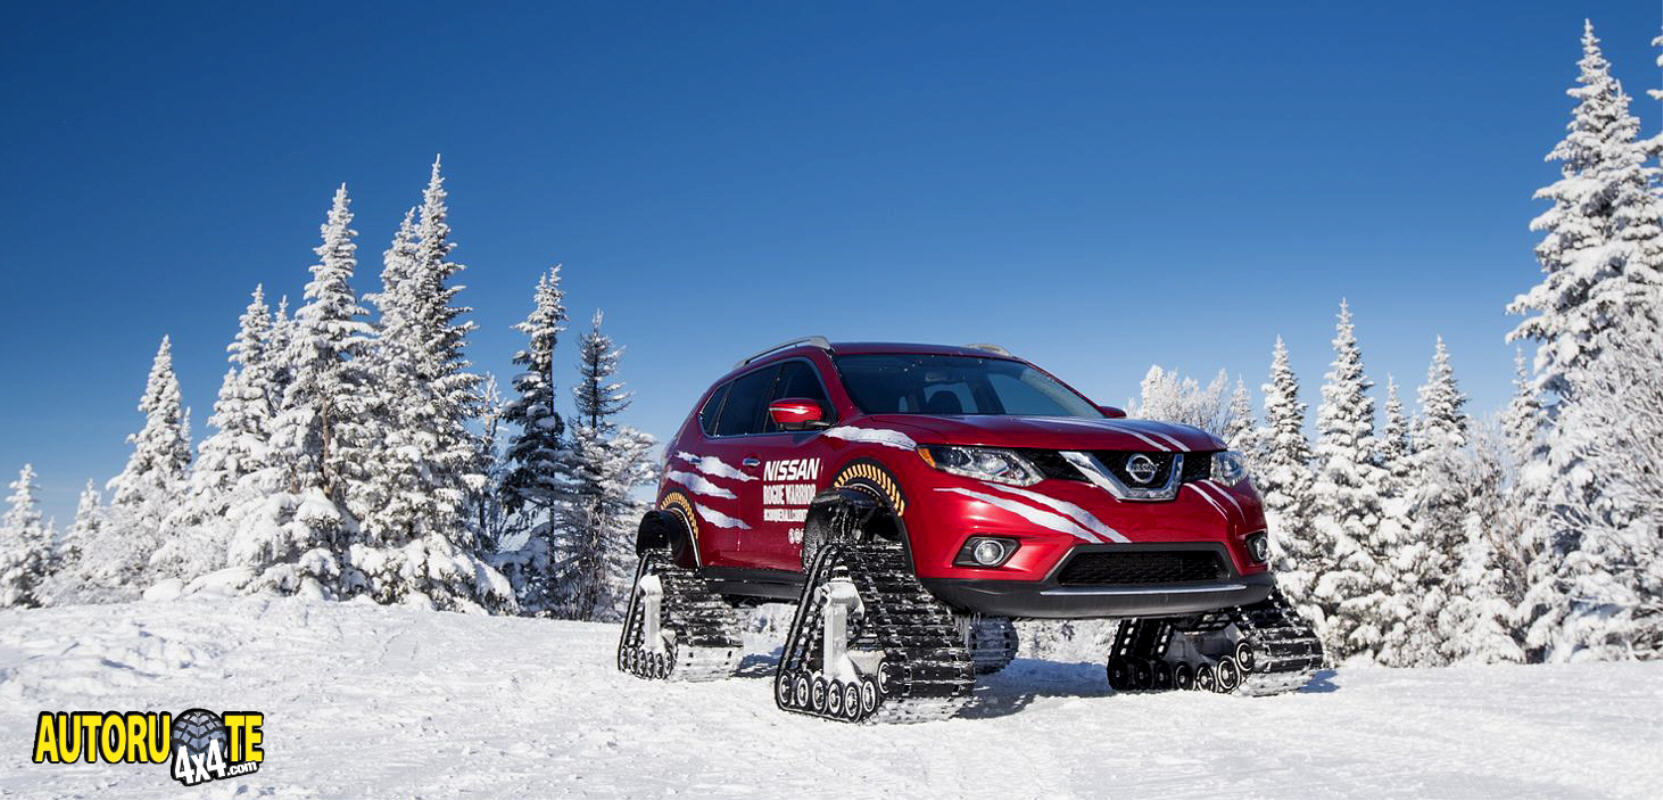 Nissan Rogue Warrior Concept Snow Tracks (2016)